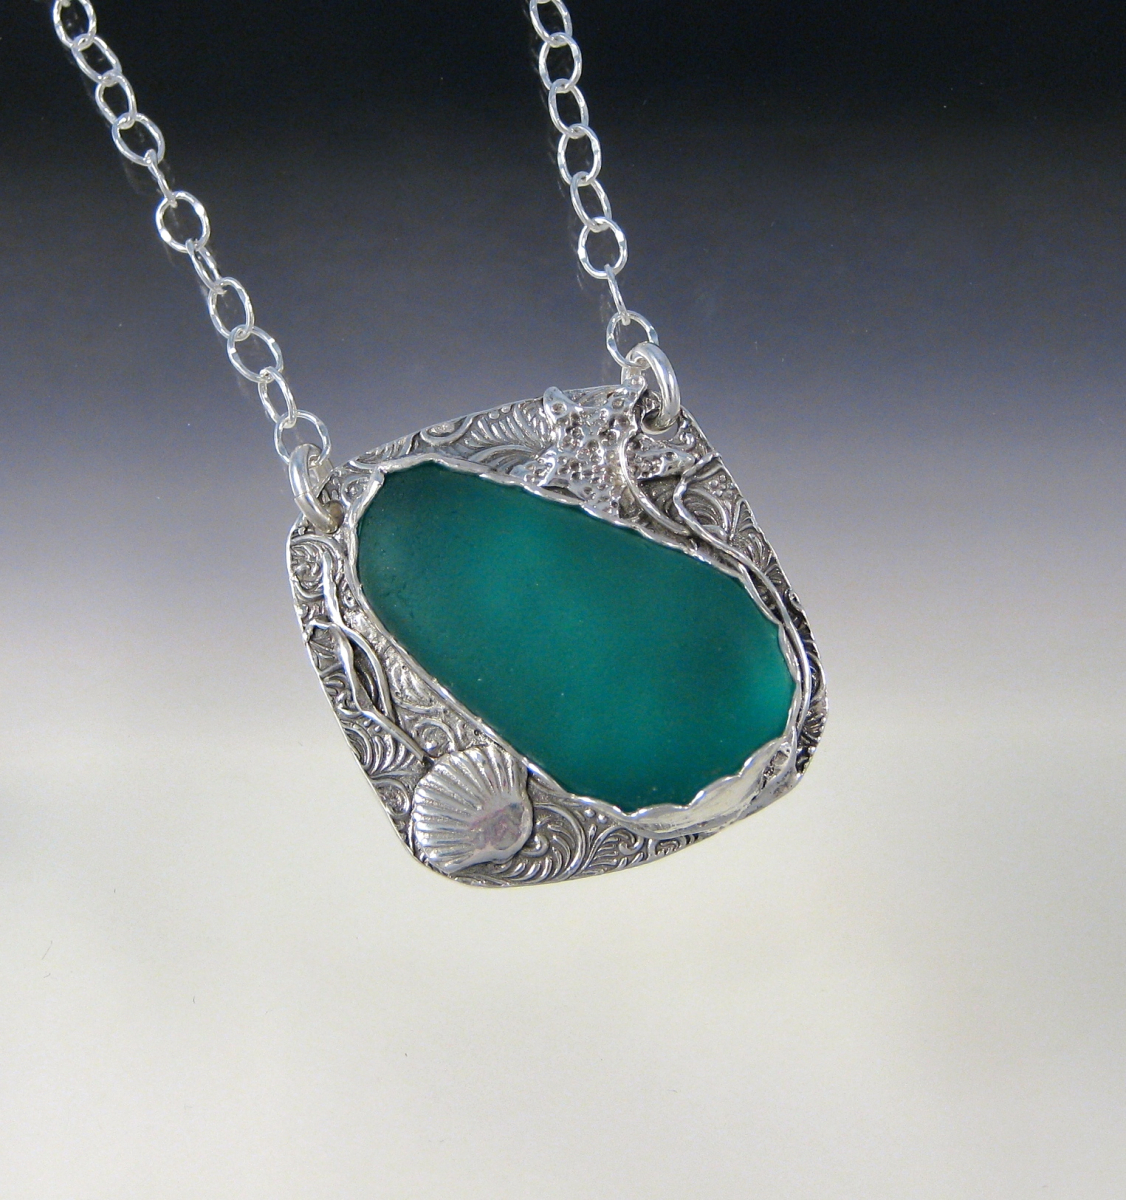 Connie's Teal Beachy Necklace (large view)